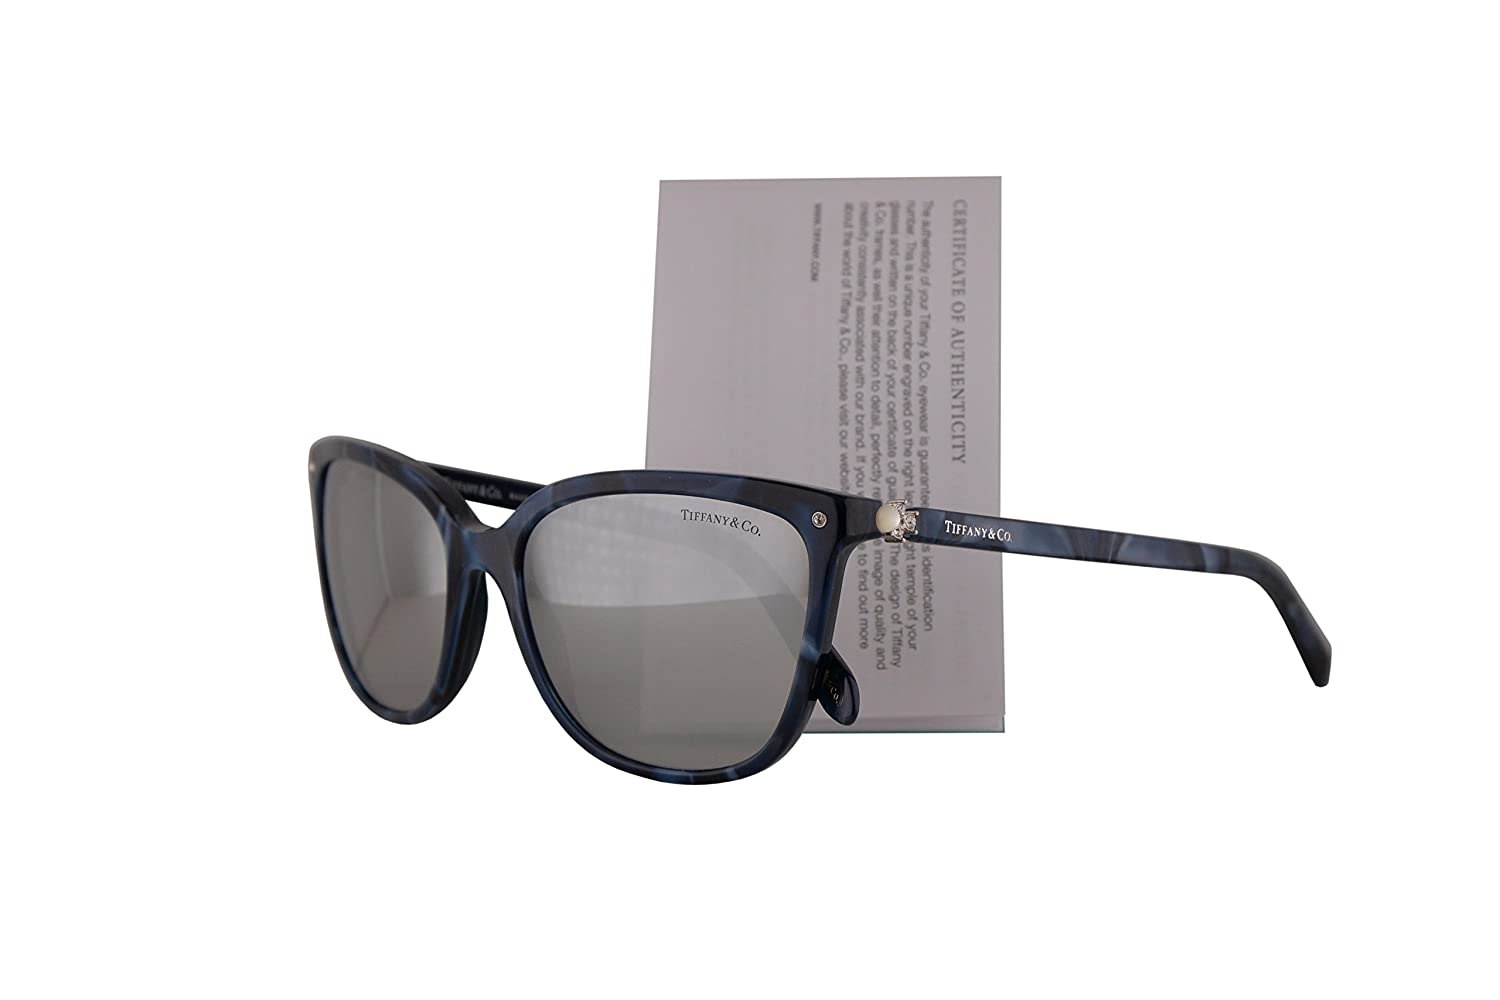 d1ce9e0fe01 Amazon.com  Tiffany   Co. TF4105HB Sunglasses Blue Shell w Light Grey  Mirror Silver Lens 55mm 82006V TF4105-H-B Tiffany Co. TF 4105HB TF 4105-H-B   Clothing